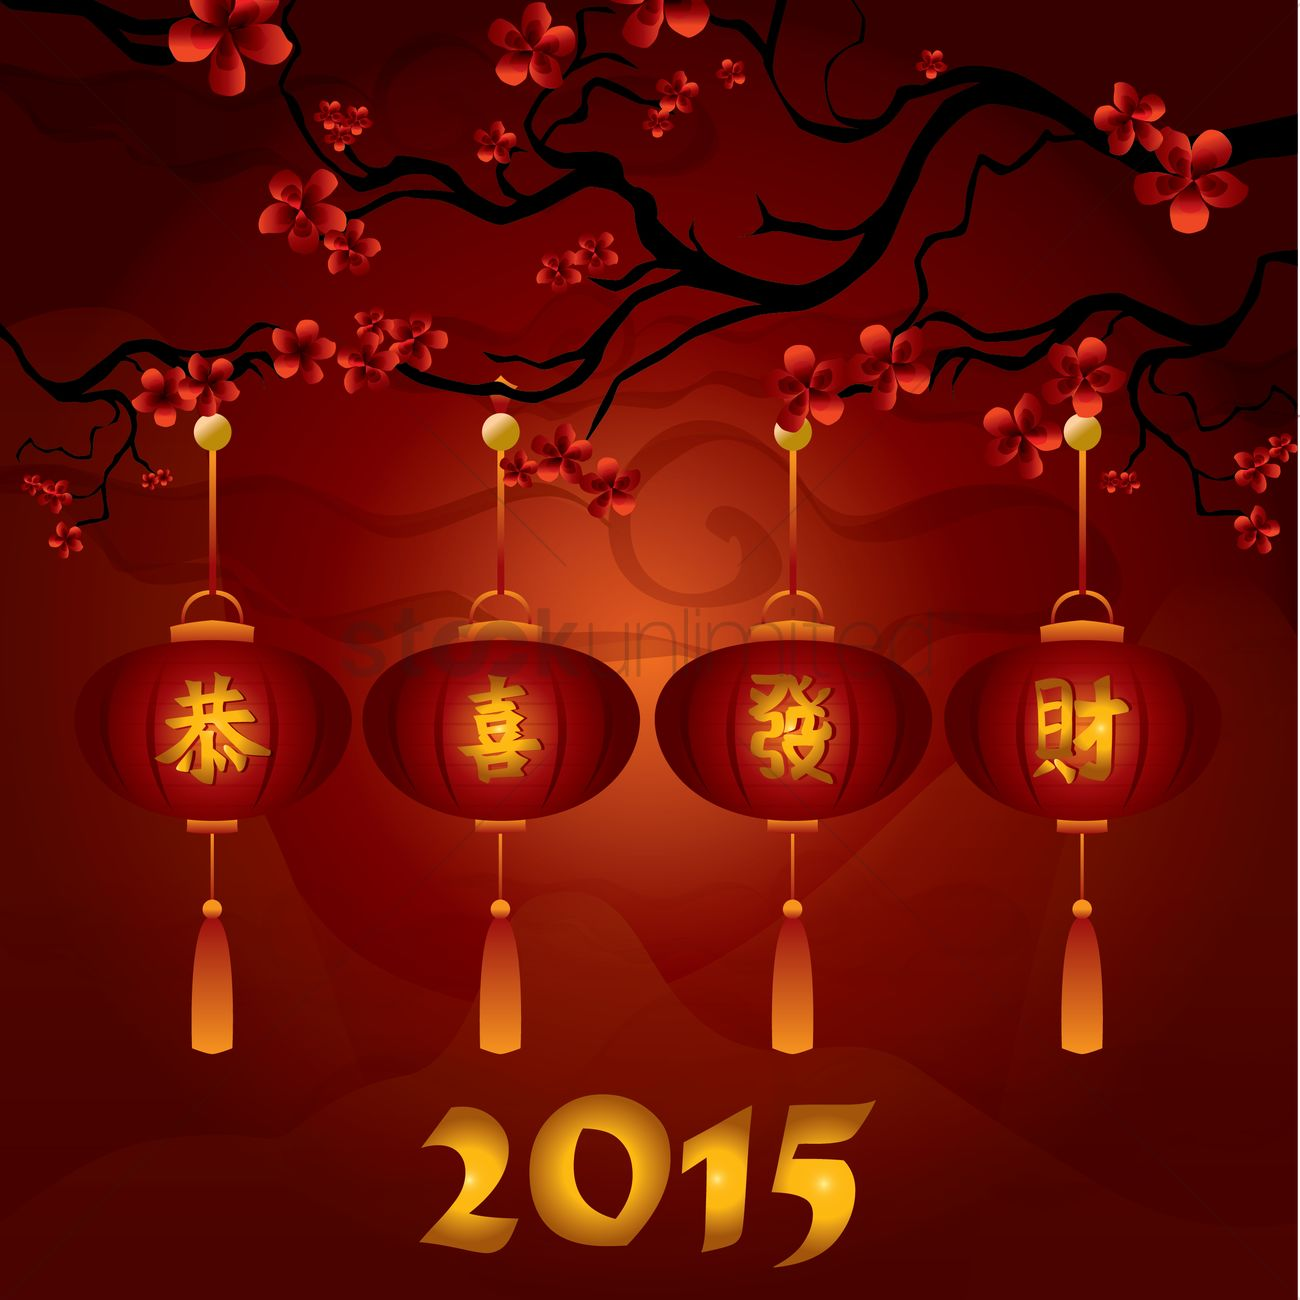 Chinese New Year Greeting Design Vector Image 1393566 Stockunlimited